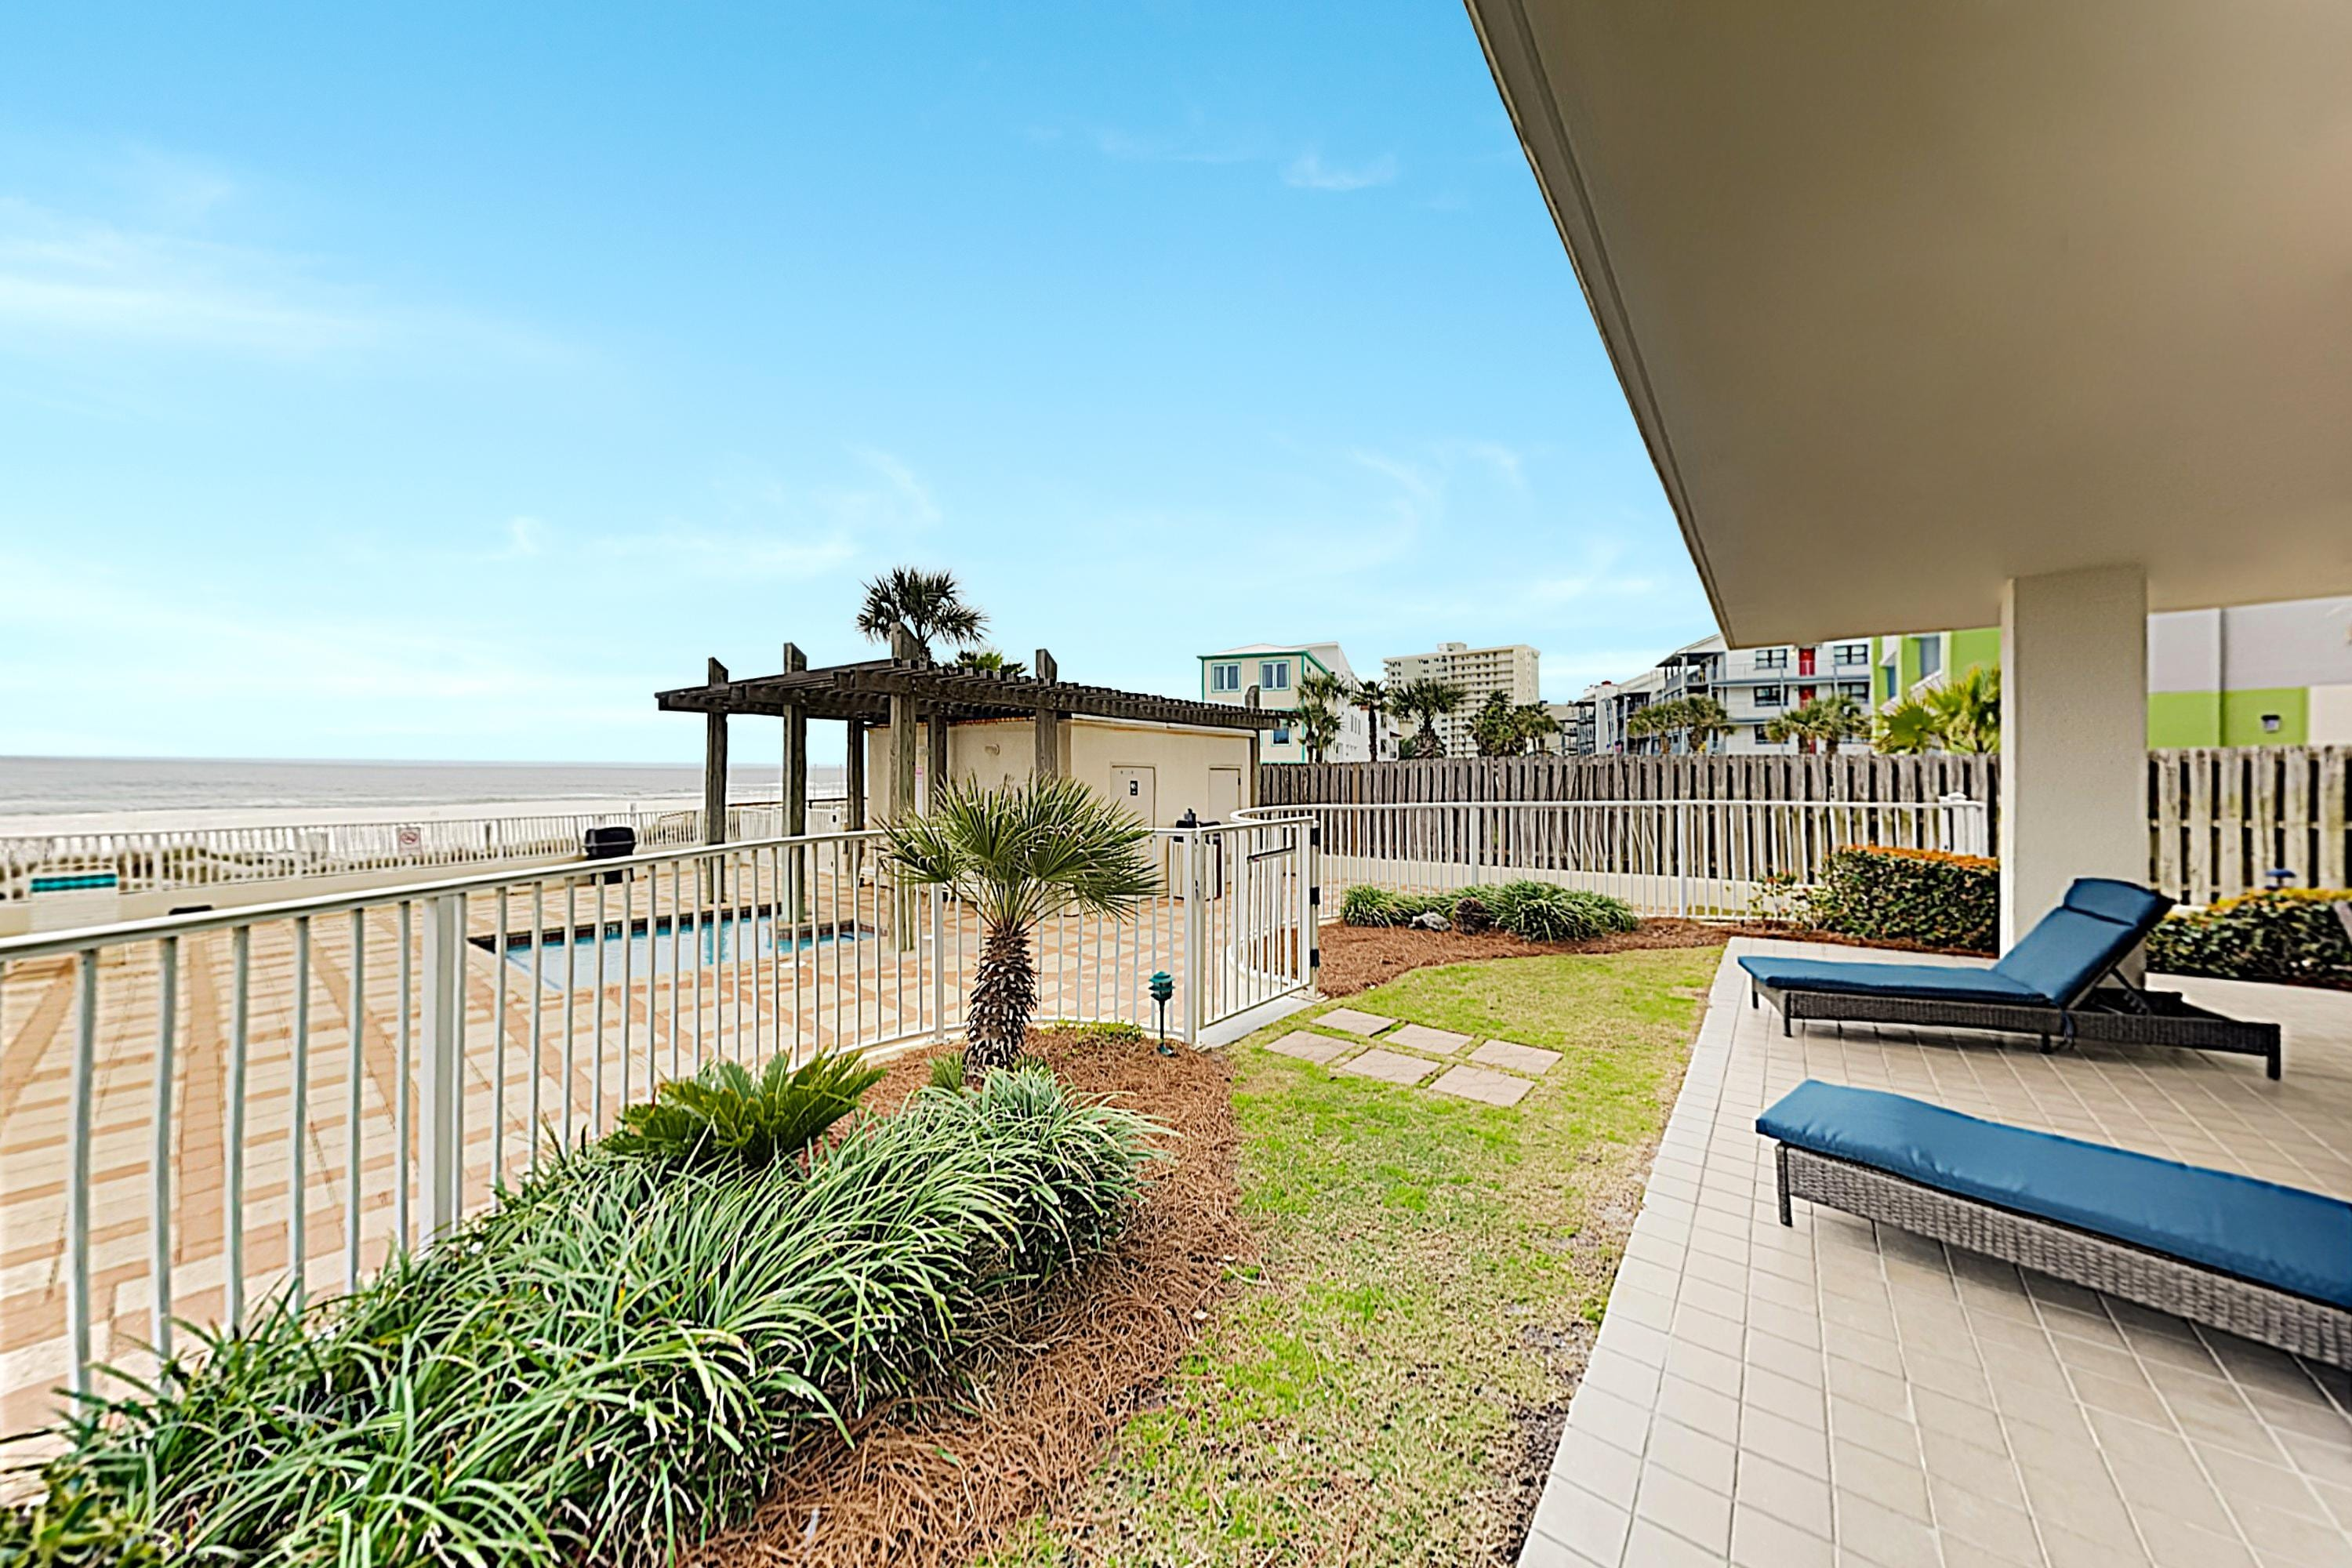 Enjoy the ocean breeze from comfortable loungers on your private patio.